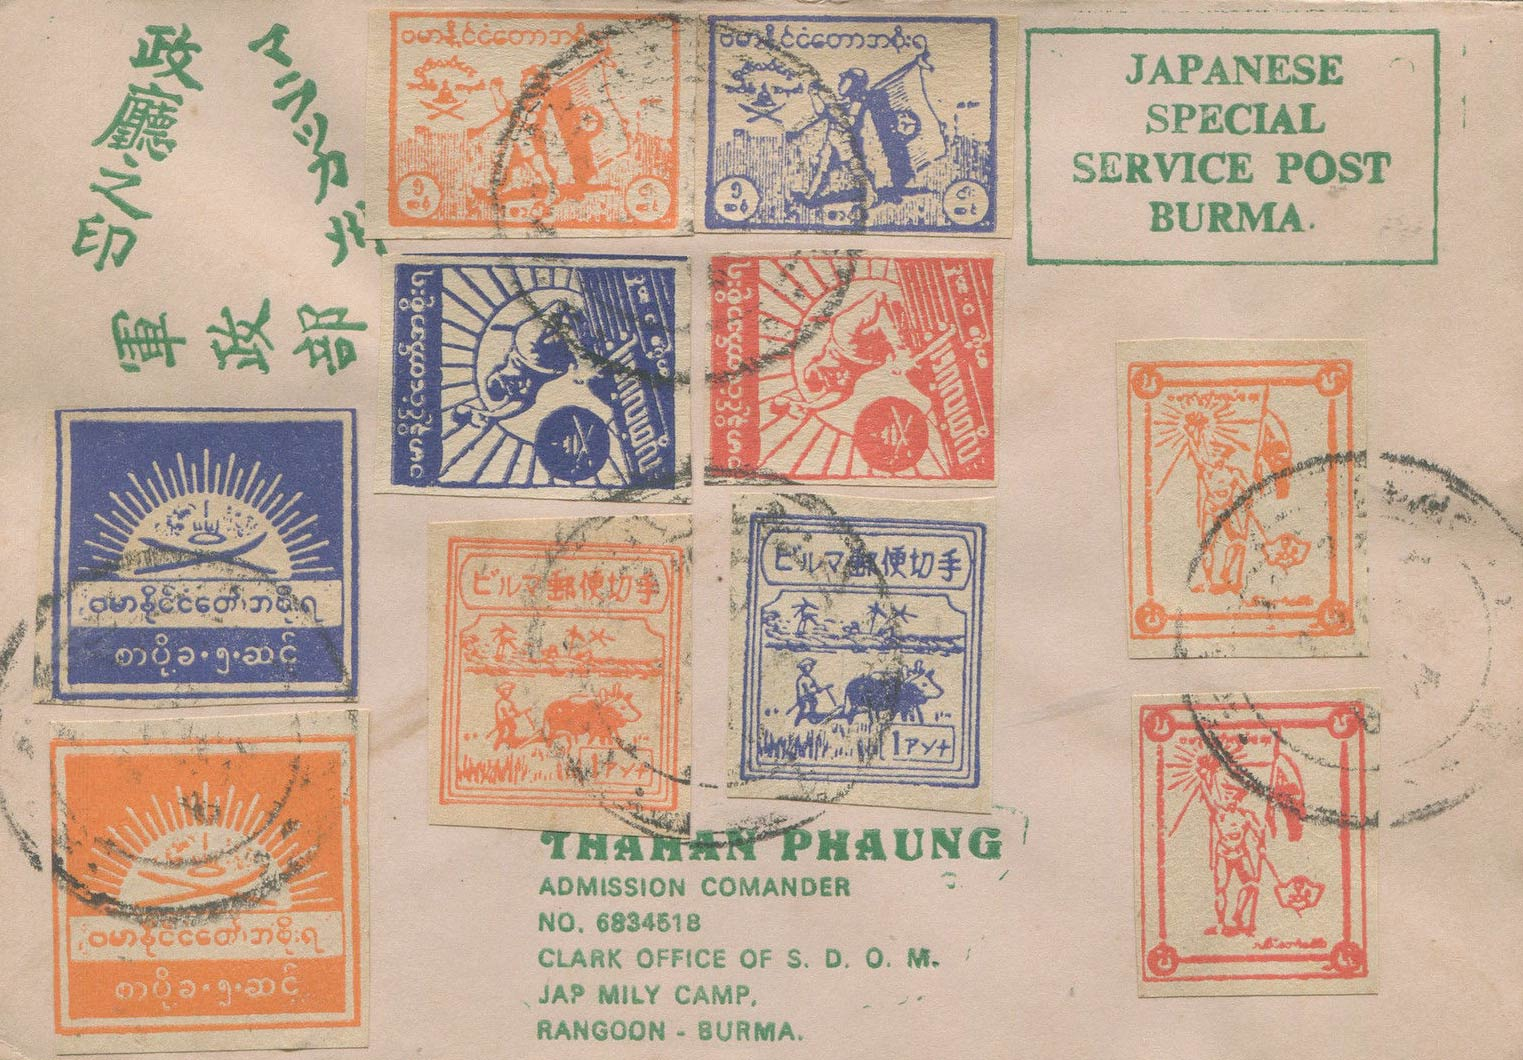 Burma_Japanese-Special-Service-Post_Cover_Forgery8